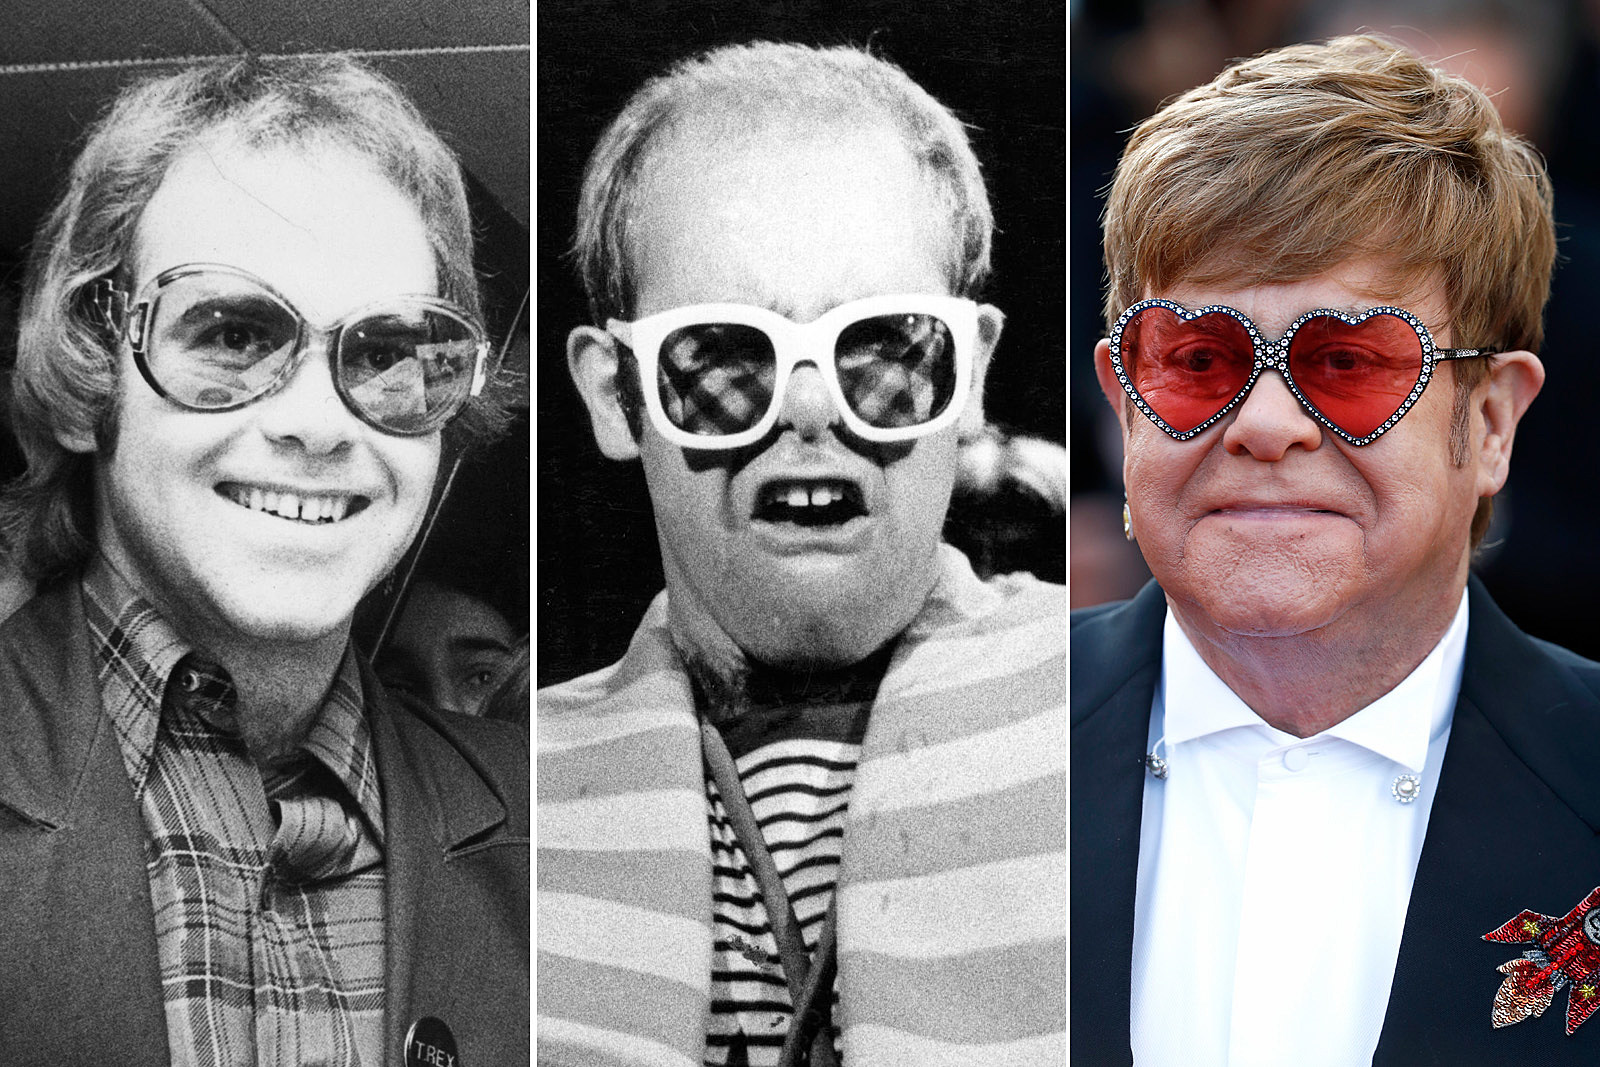 So What's the Deal With Elton John's Hair?